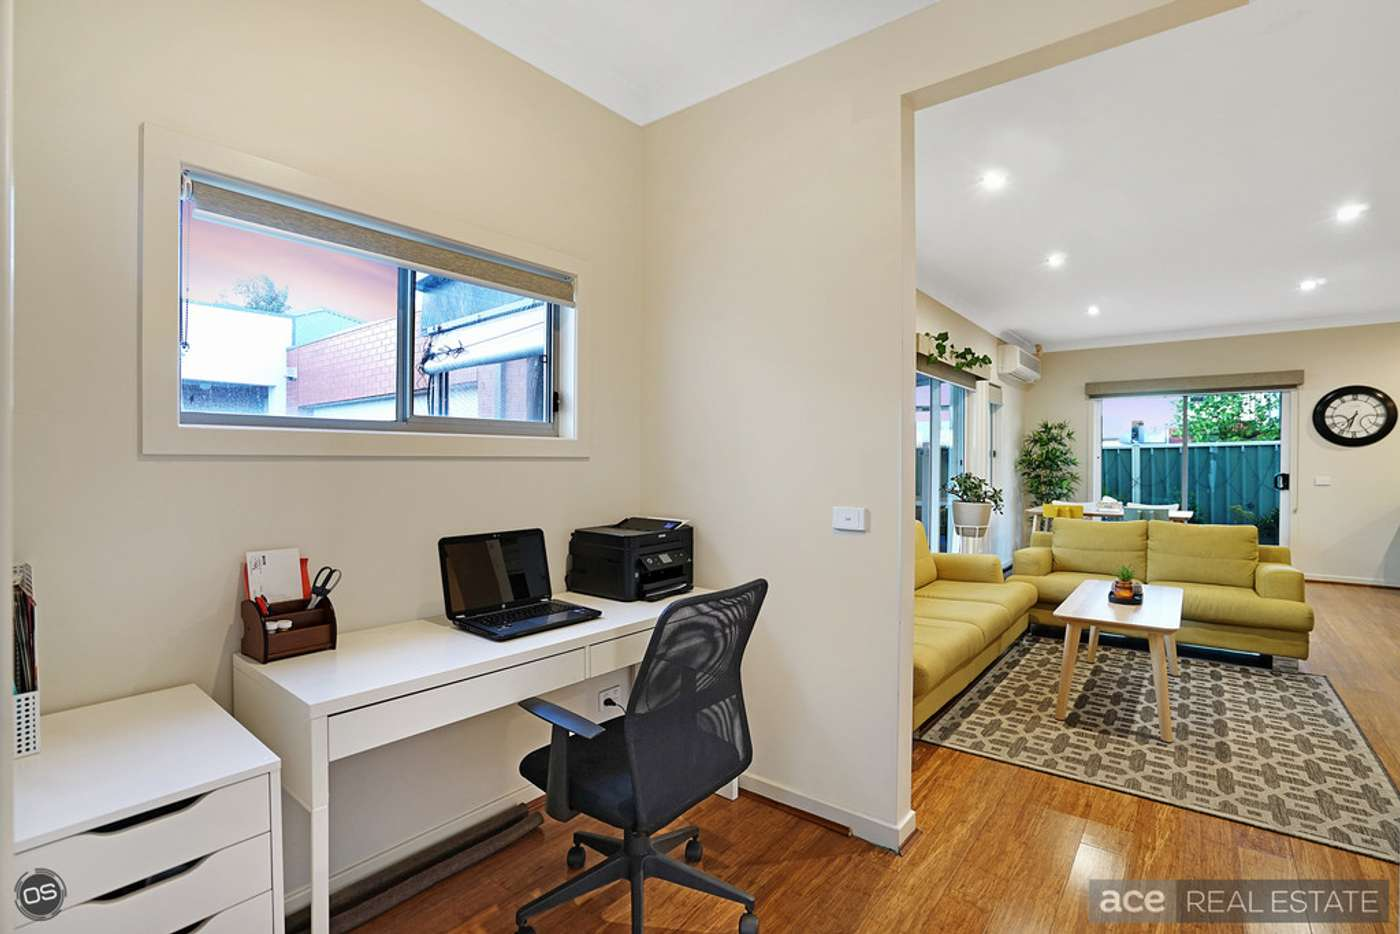 Fifth view of Homely house listing, 20 Architecture Way, Point Cook VIC 3030